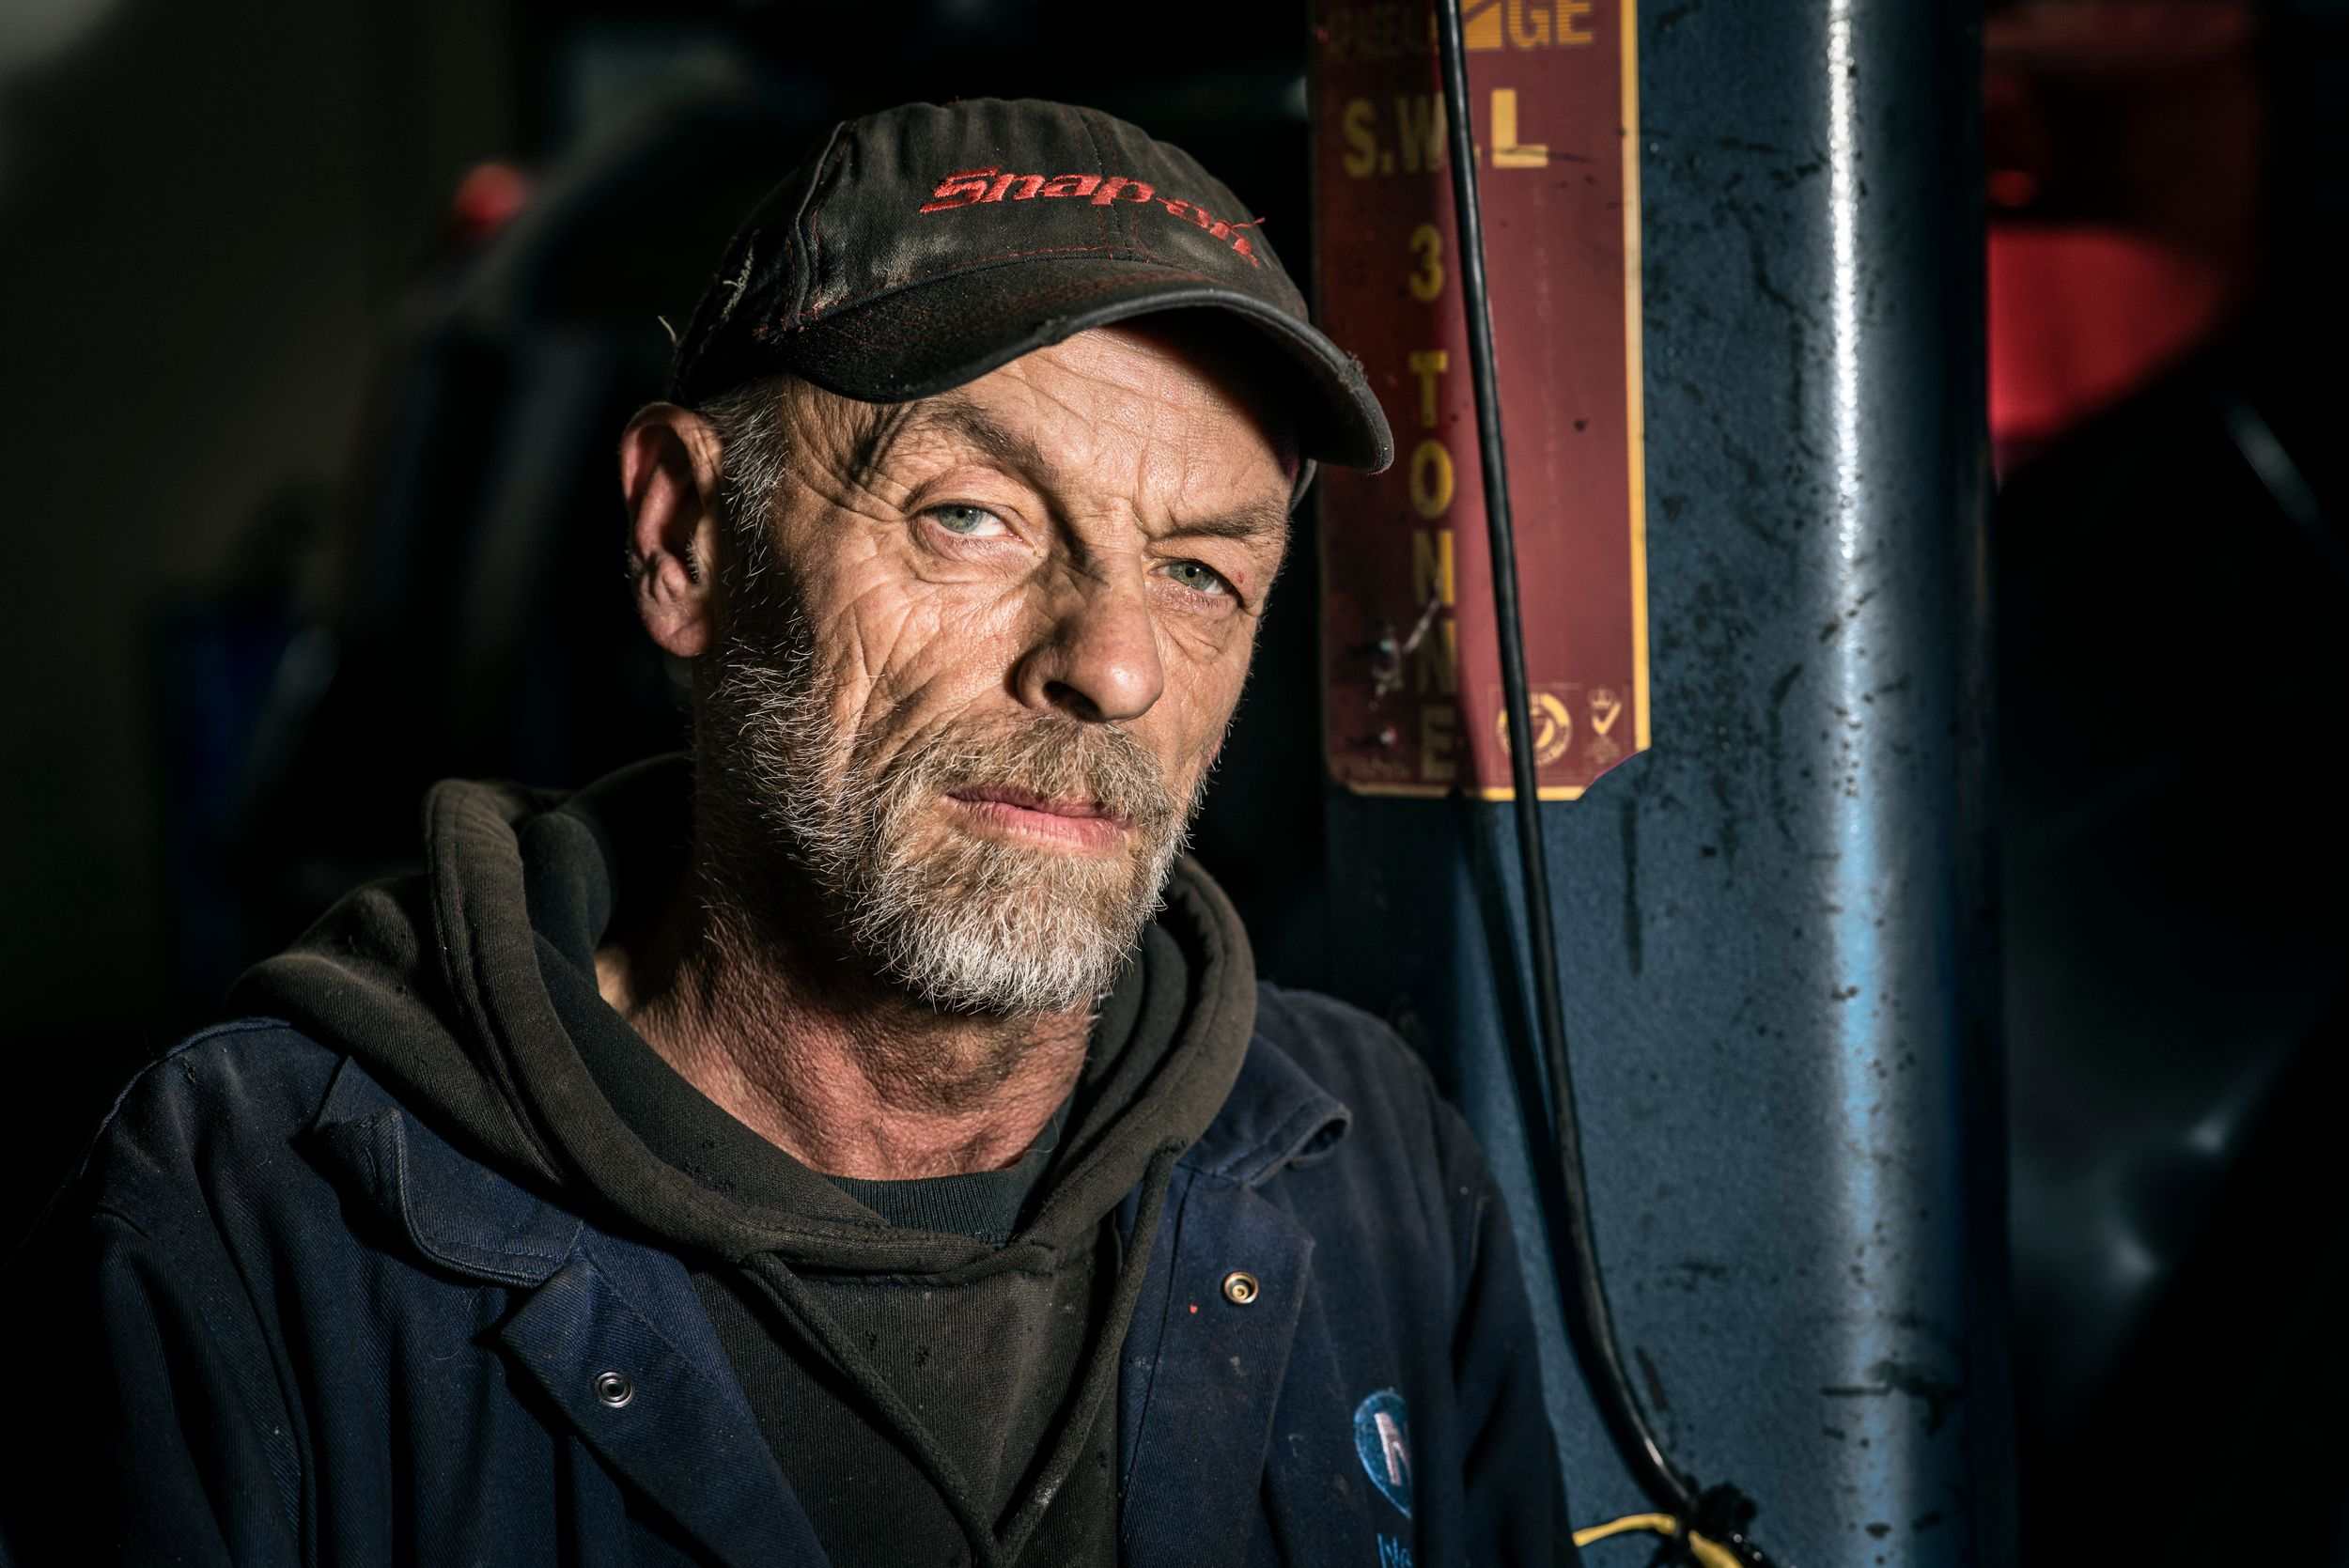 Environmental portrait of mechanic in situ.